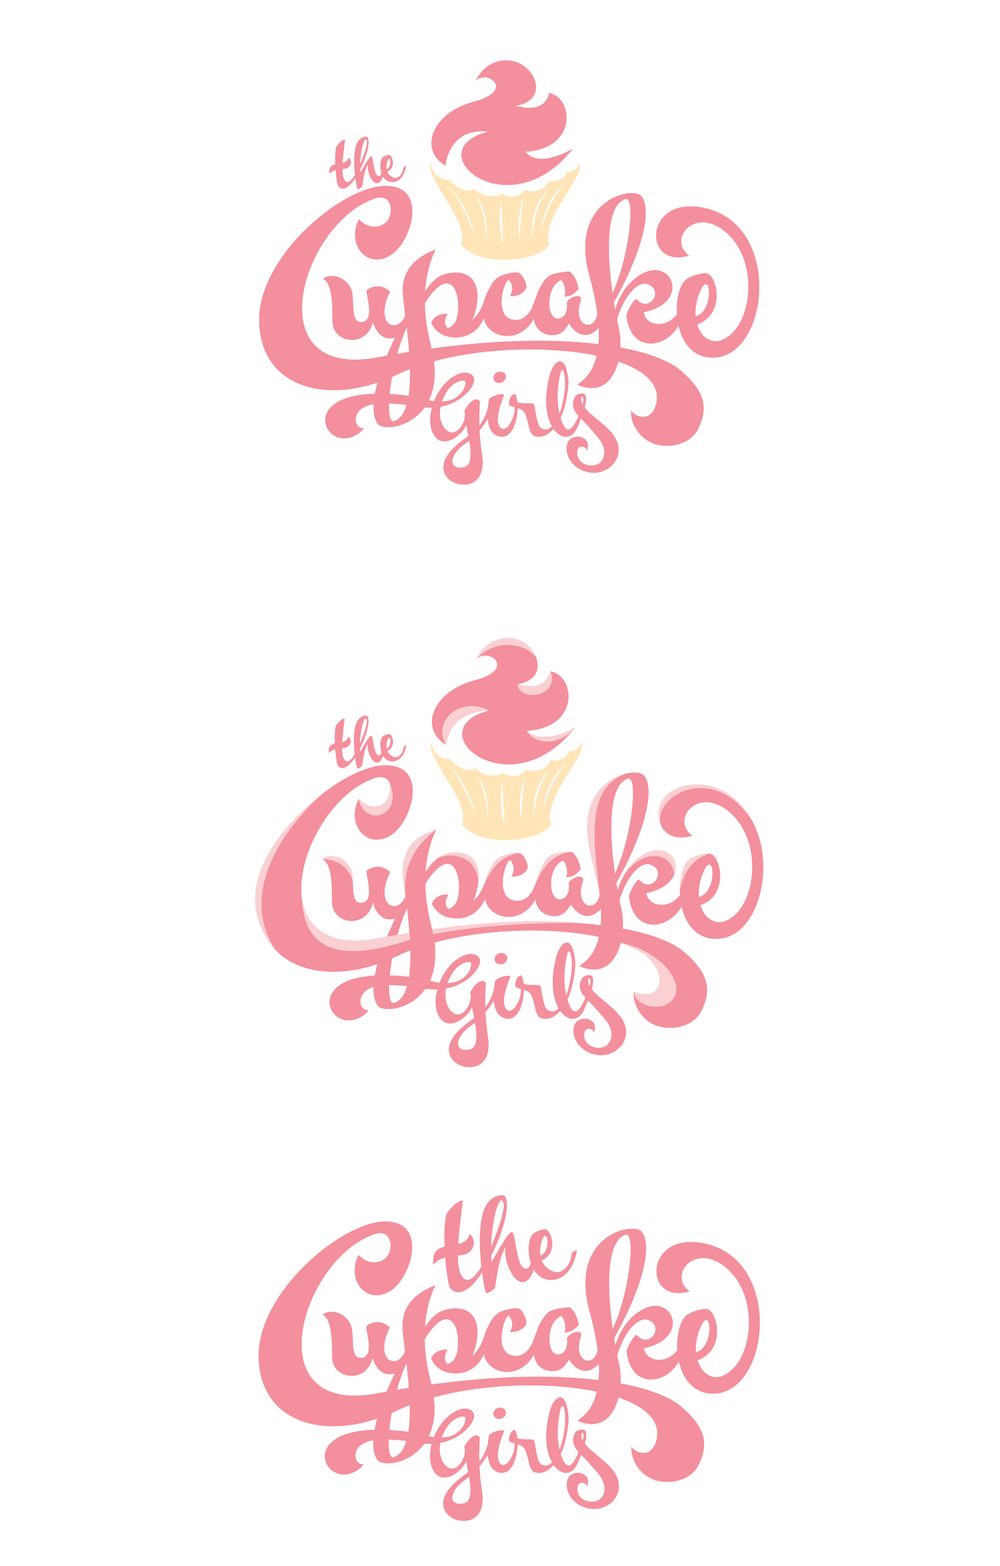 cupcake girl logo options.jpg